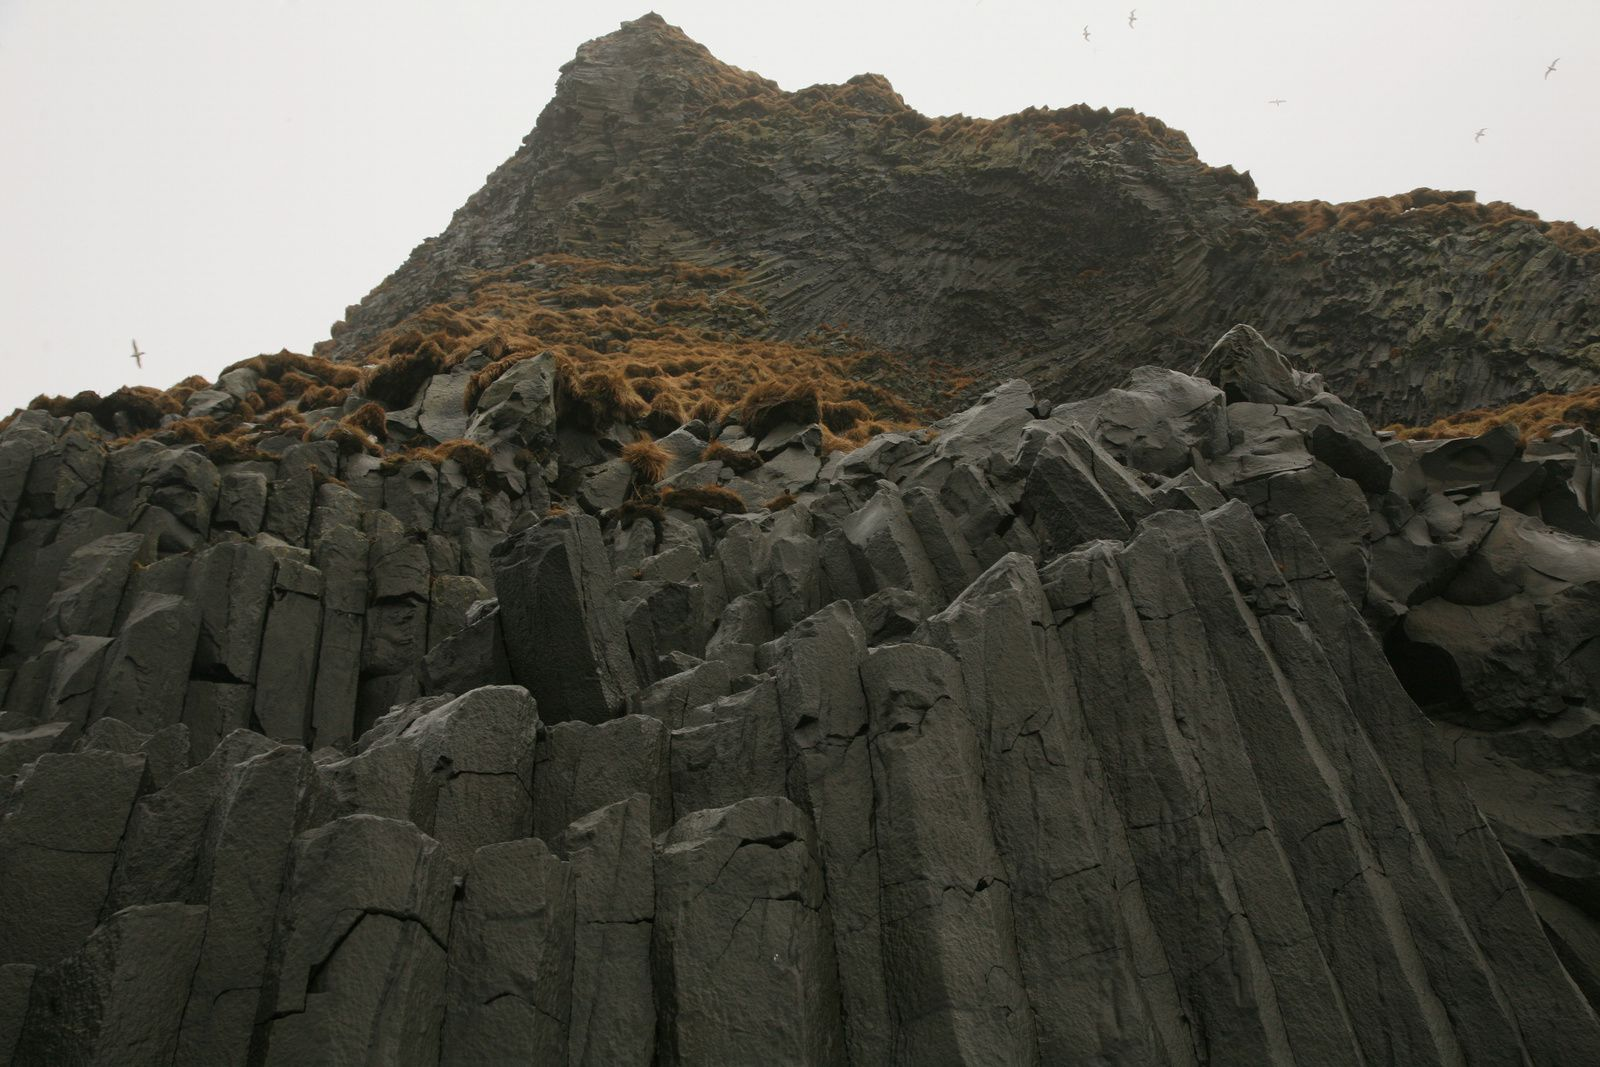 The organs of Reynisfjara - organs and entablature - photo © 2015 Bernard Duyck